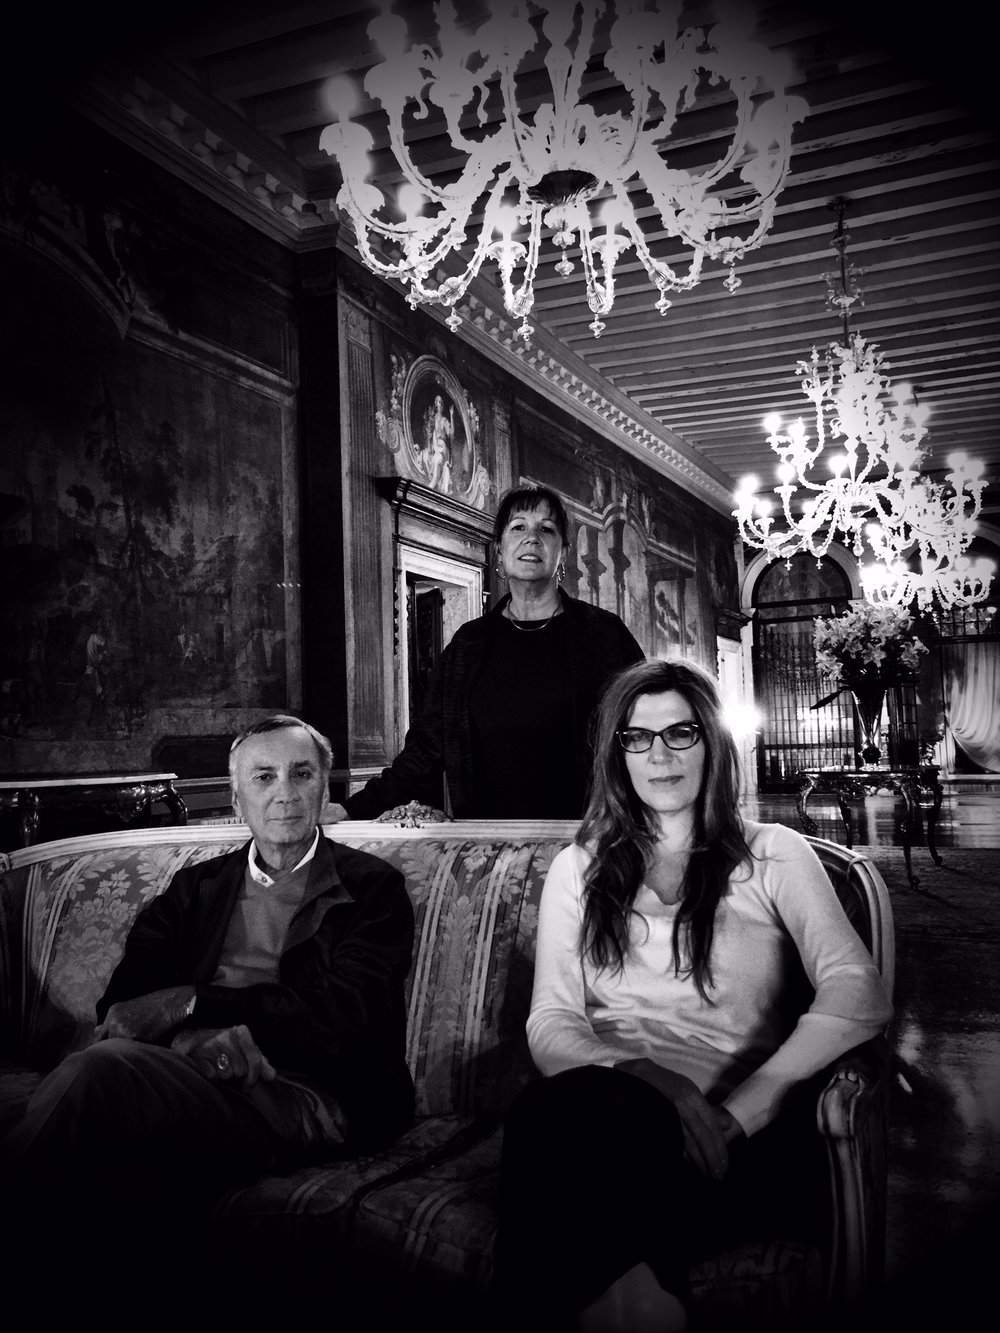 Phil and Renee Giltner with isabel in Venice, Italy 2015